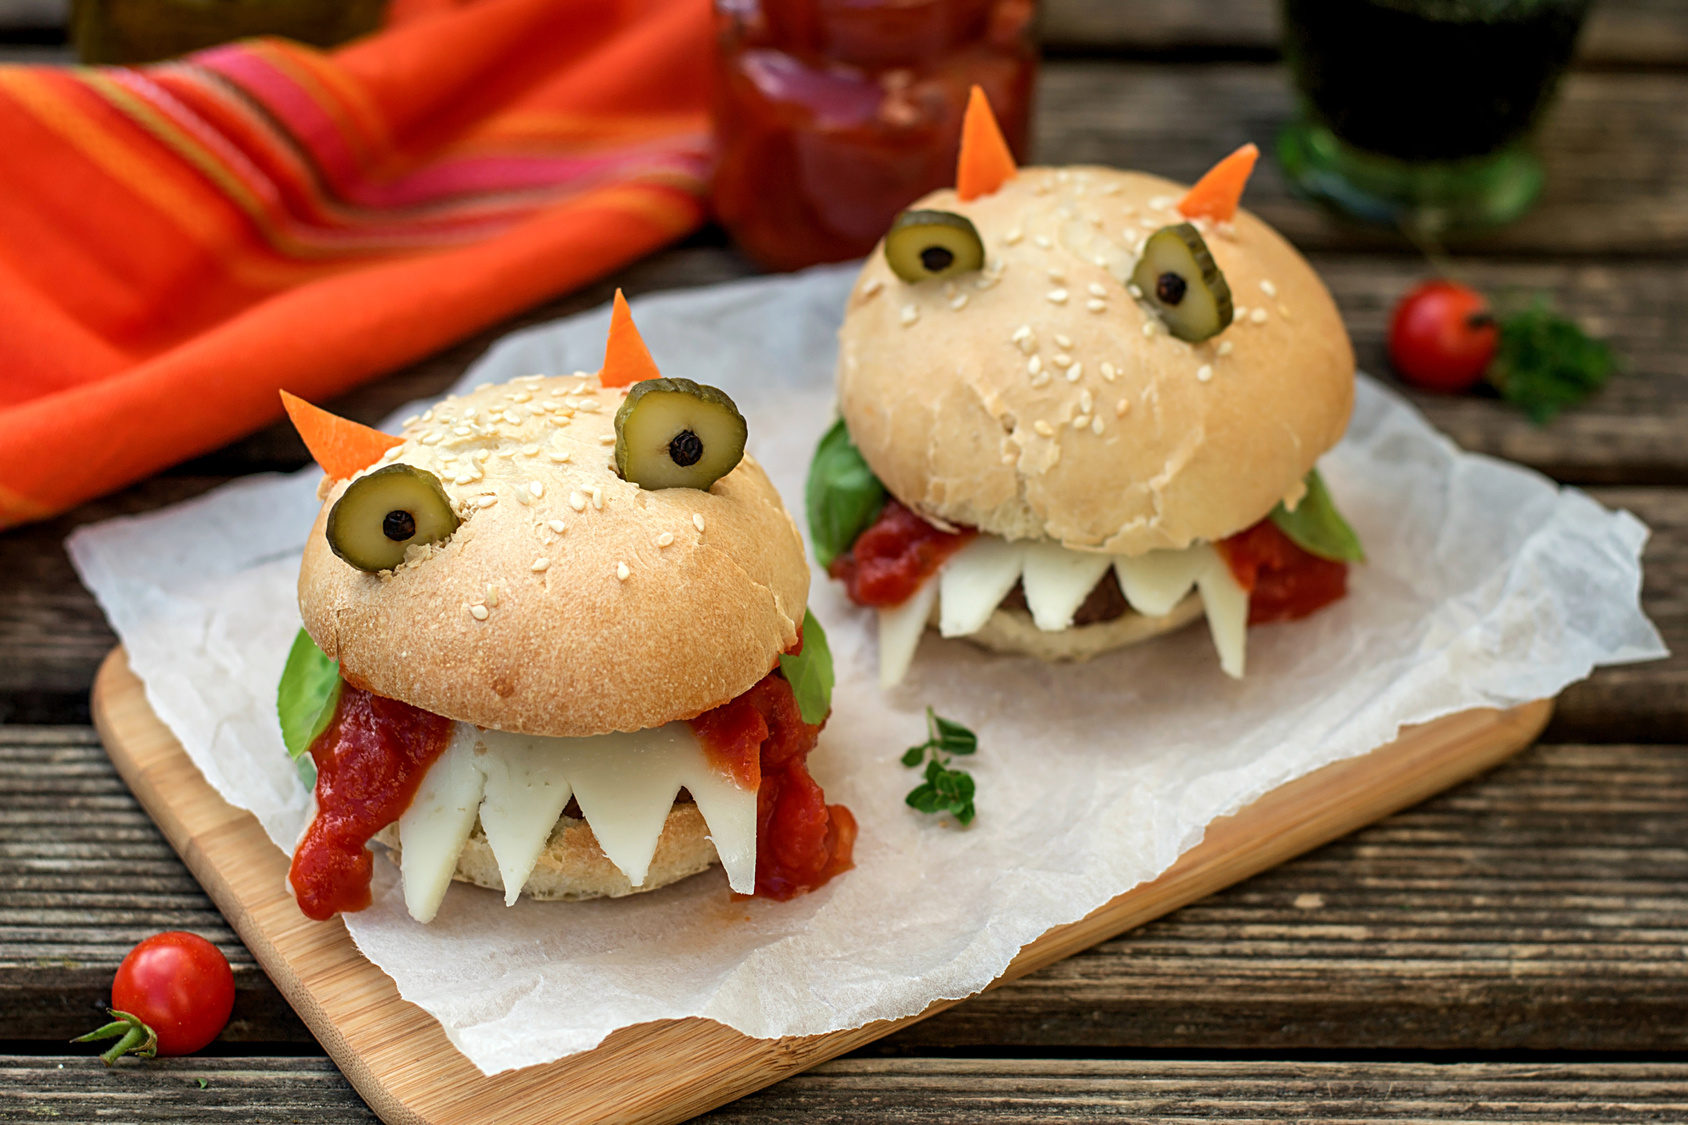 Burgers in the shape of devil with cheese, tomato sauce